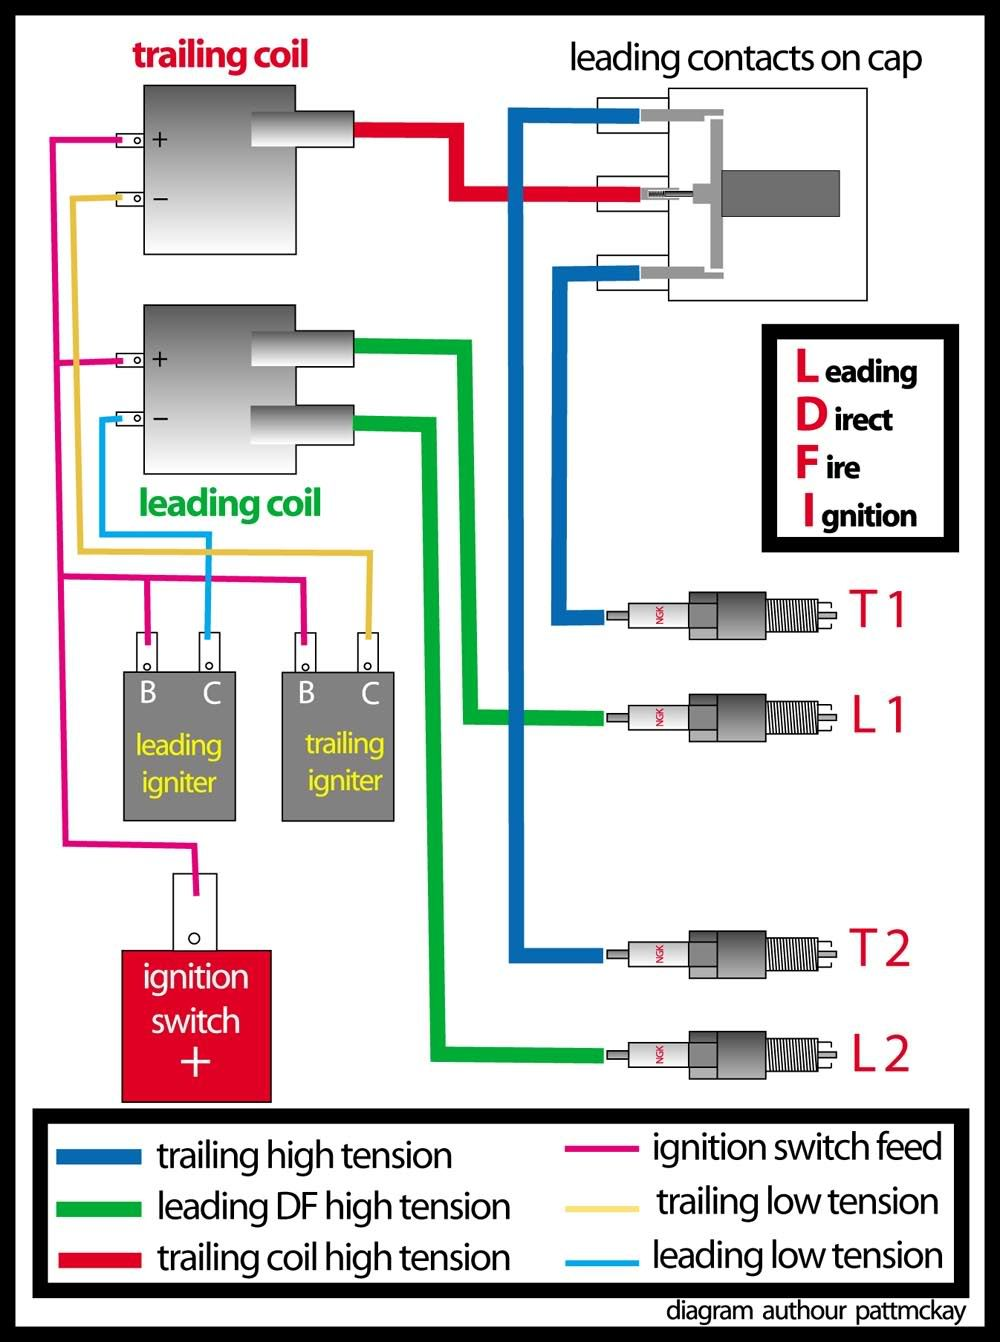 f51a9f8accfbb2accd16cb3edbec5003 here is a simple wiring diagram for a single leading direct fire 1989 rx7 wiring diagram at panicattacktreatment.co